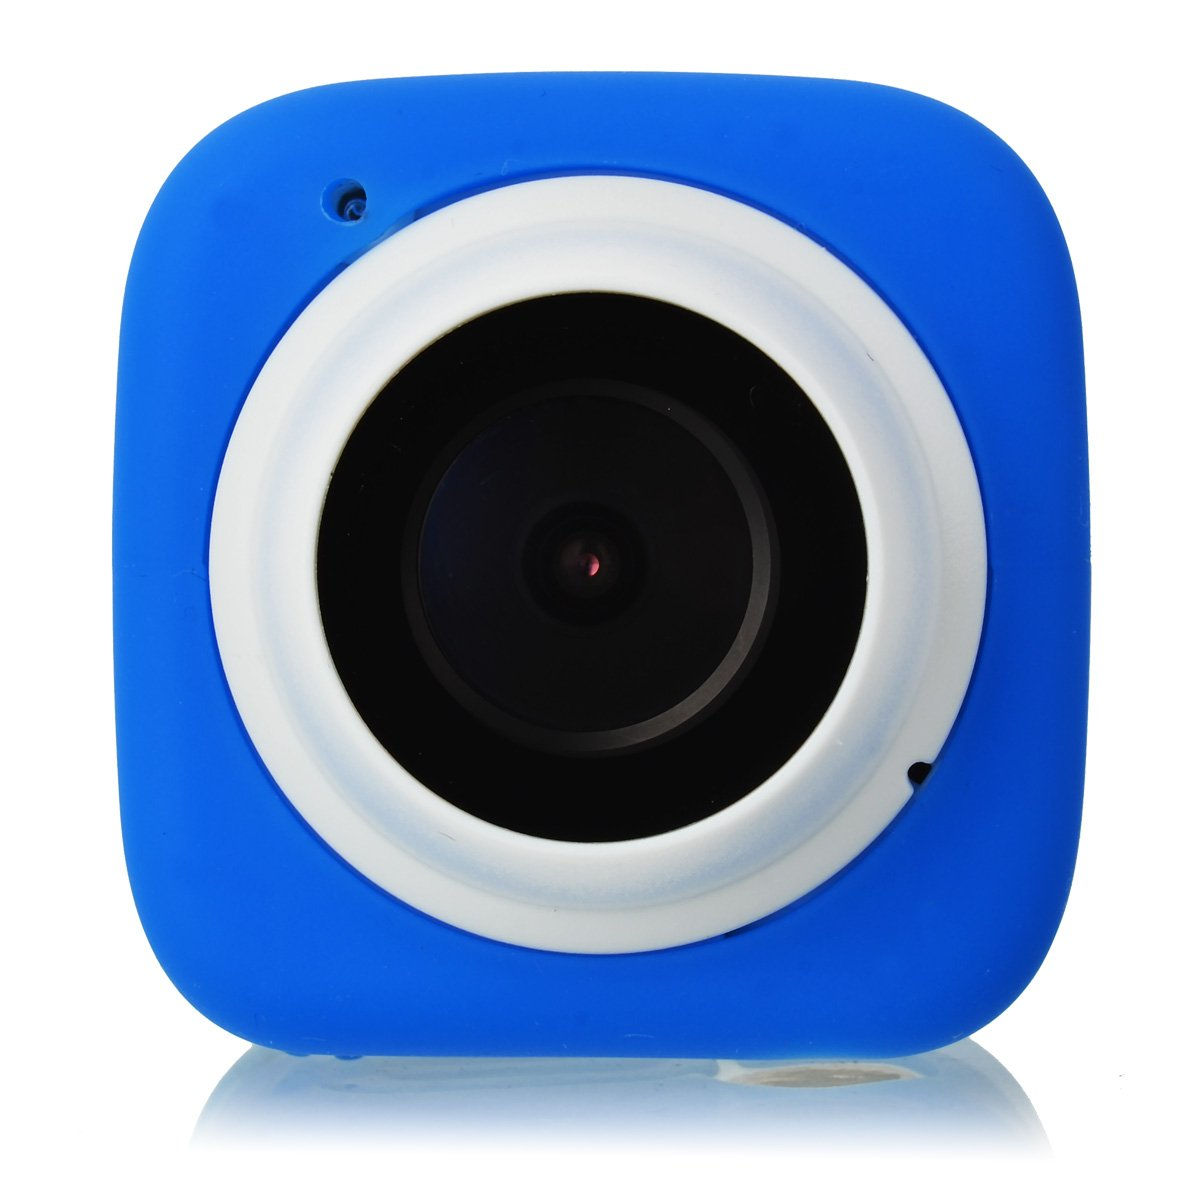 Self Timer Camera for IOS/Android Devices Support TF Card (CLASS10) Only